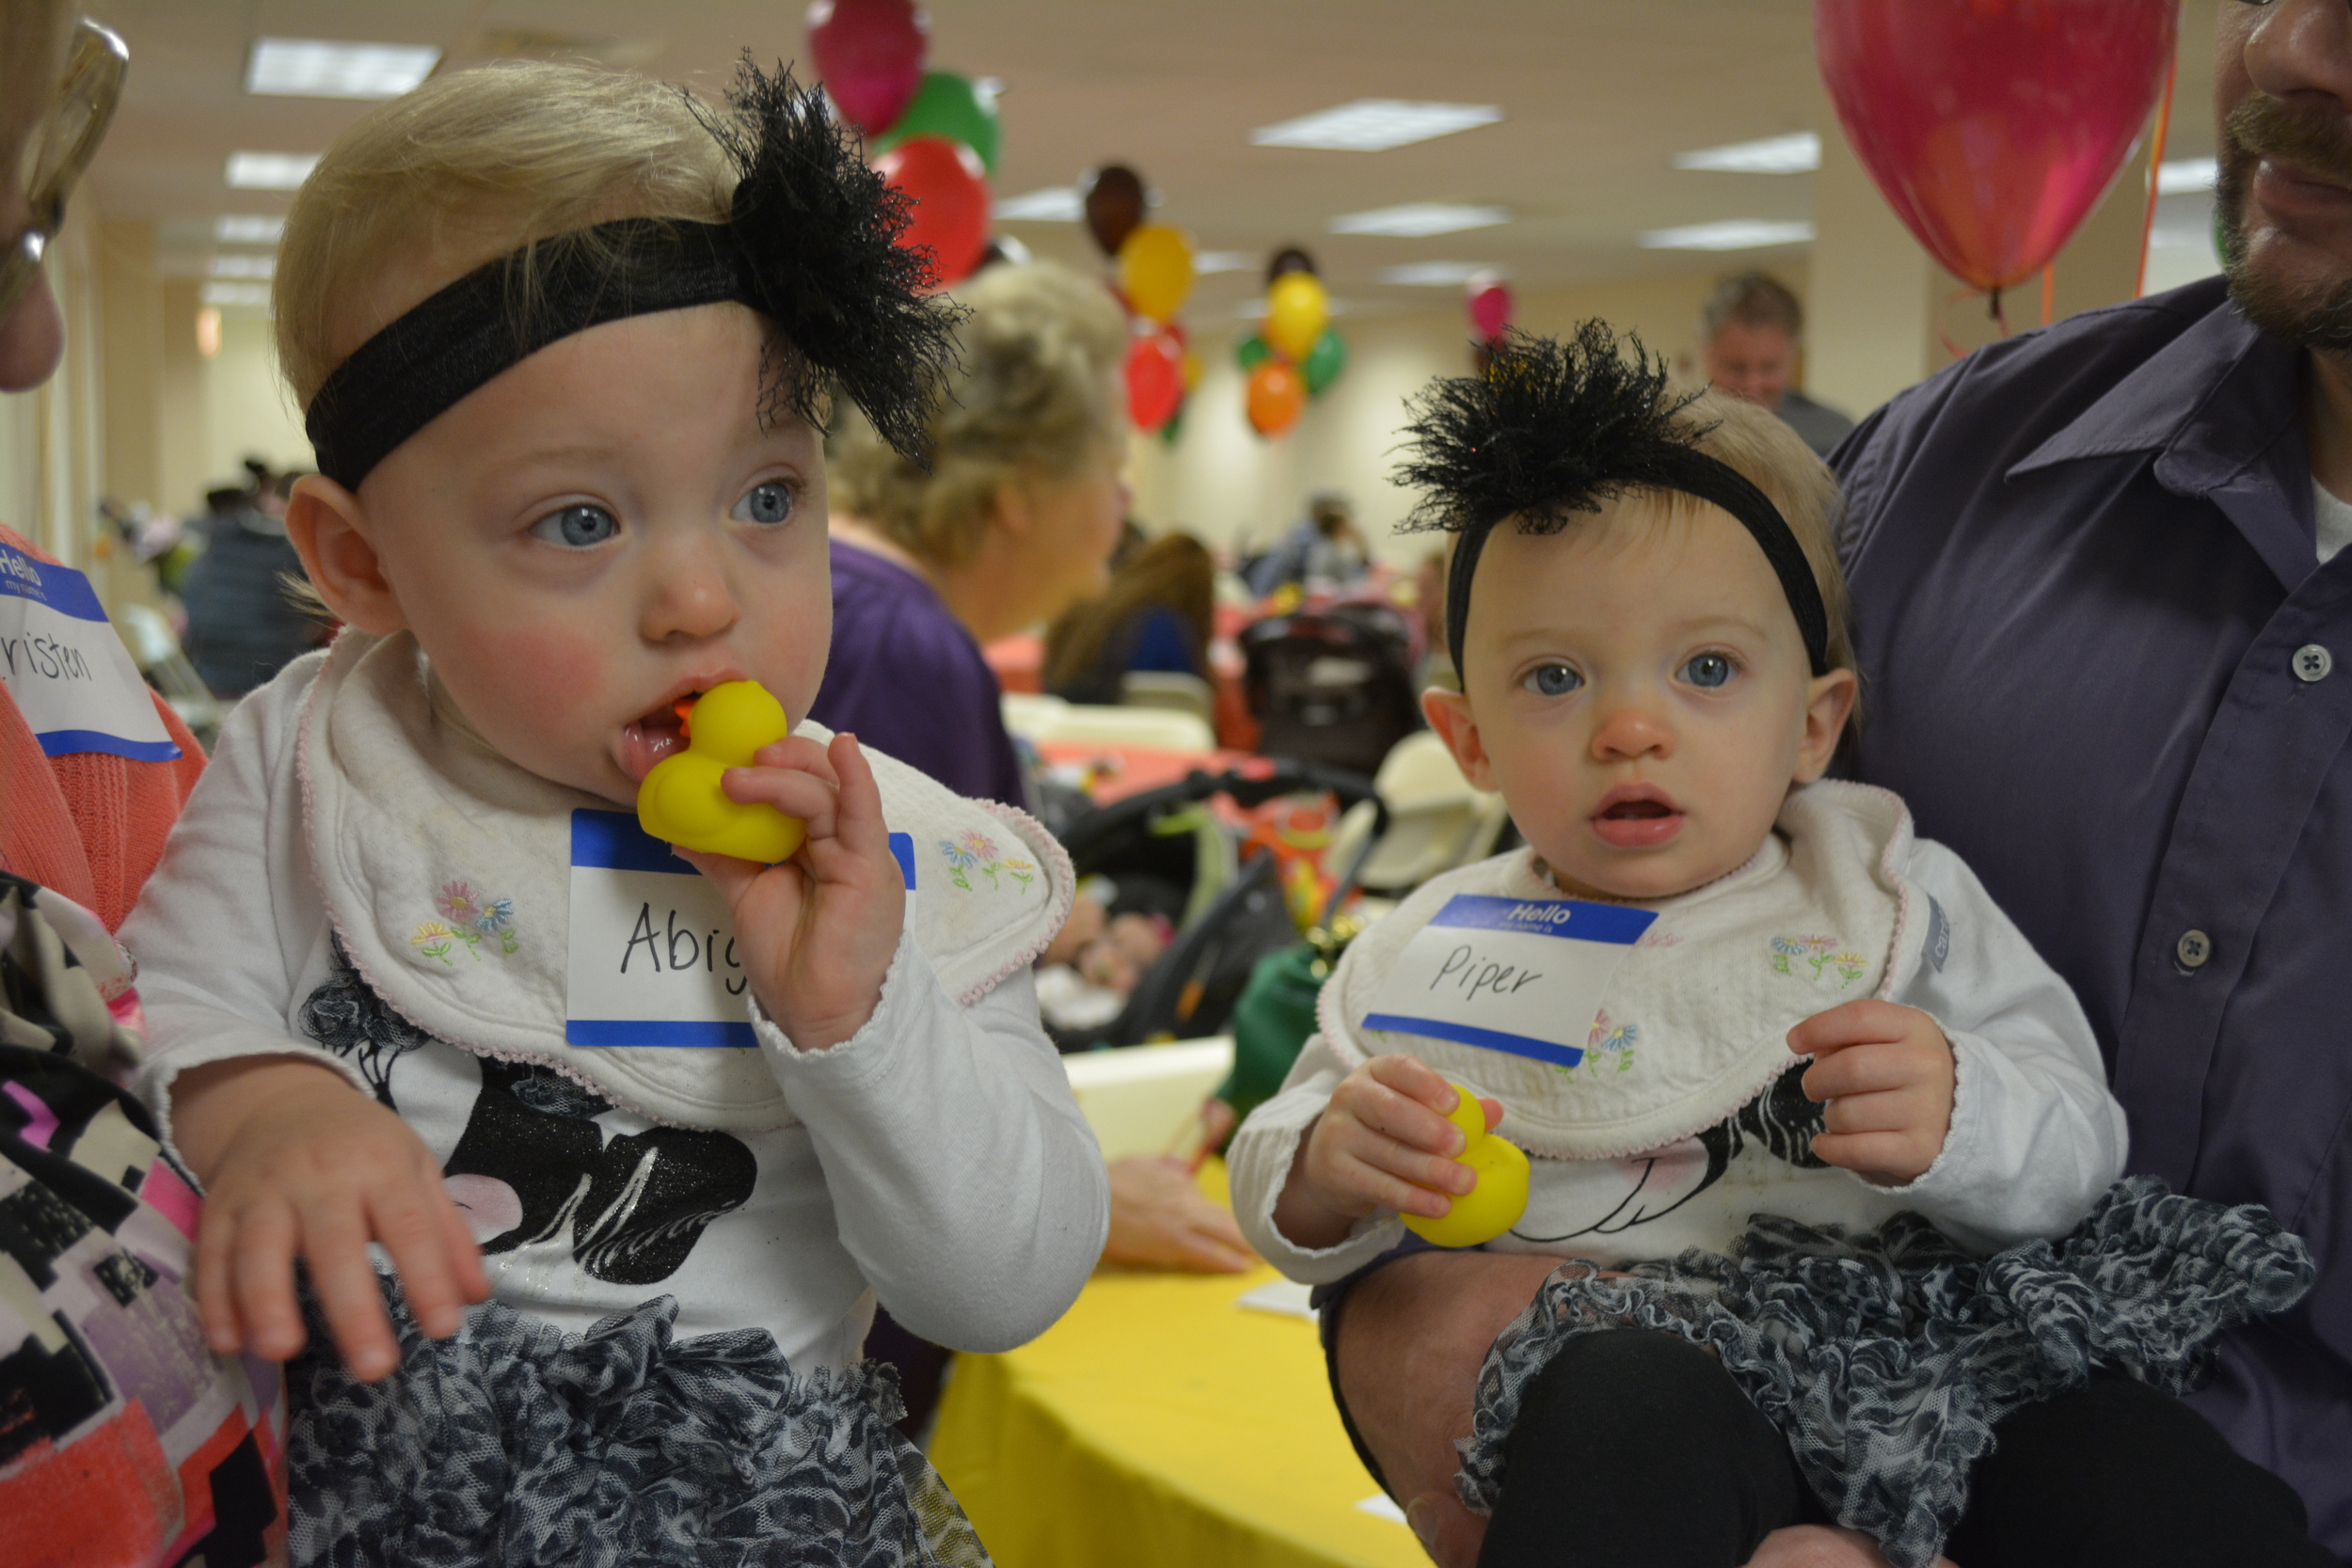 Twins Abigail and Piper Morgenegg will celebrate their first birthday on Nov. 21. ( Long Islander News photo / Arielle Dollinger)